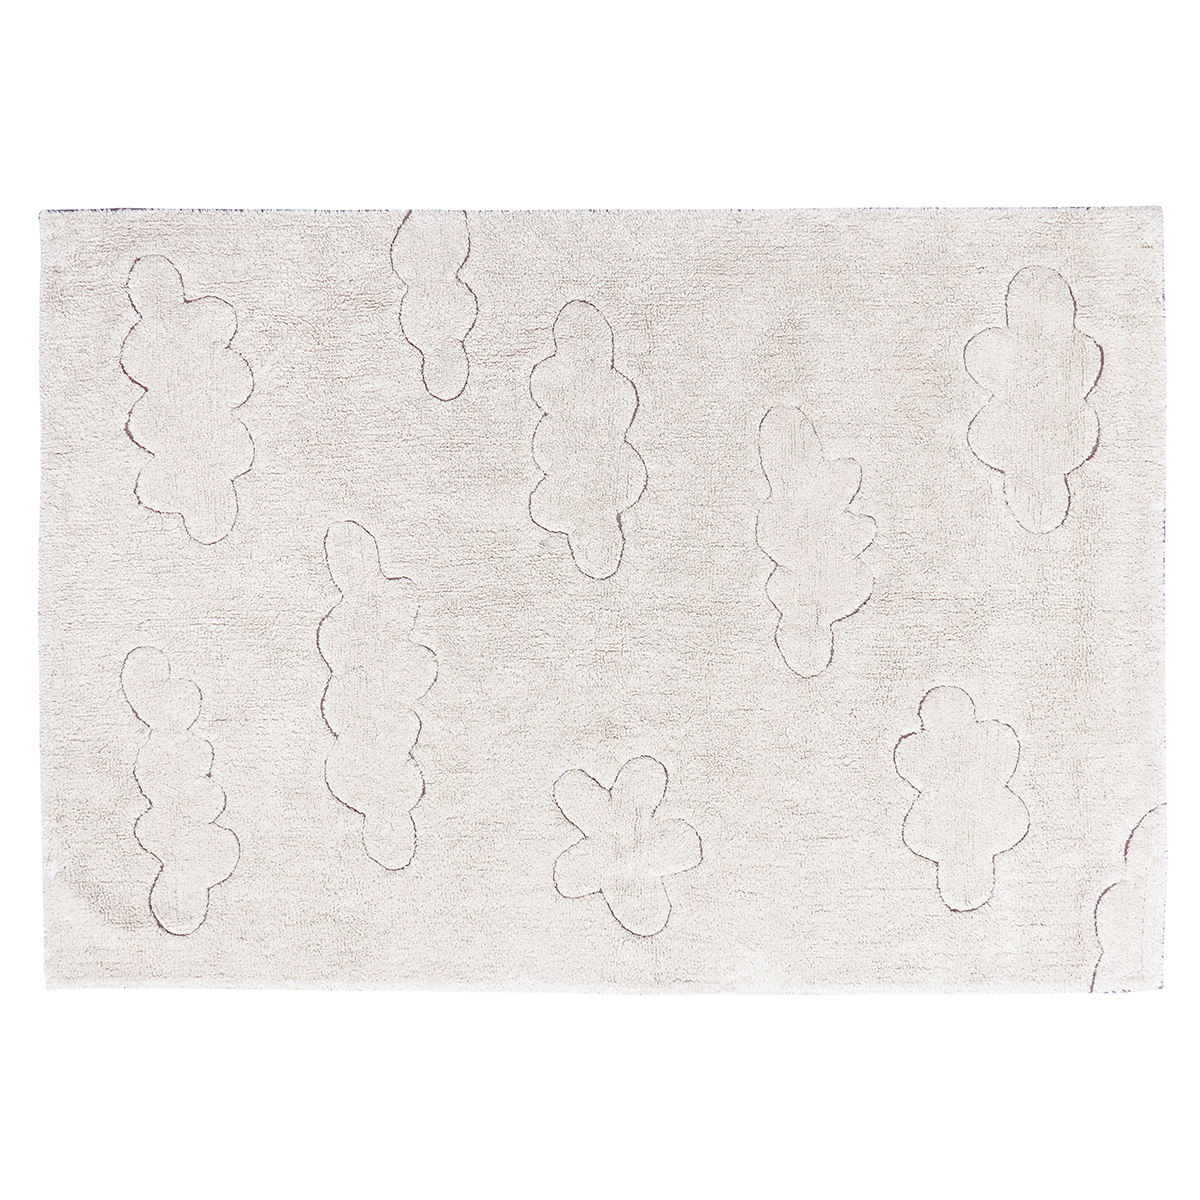 Tapis Tapis Lavable Rugcycled Nuages - 120 x 160 cm Tapis Lavable Rugcycled Nuages - 120 x 160 cm